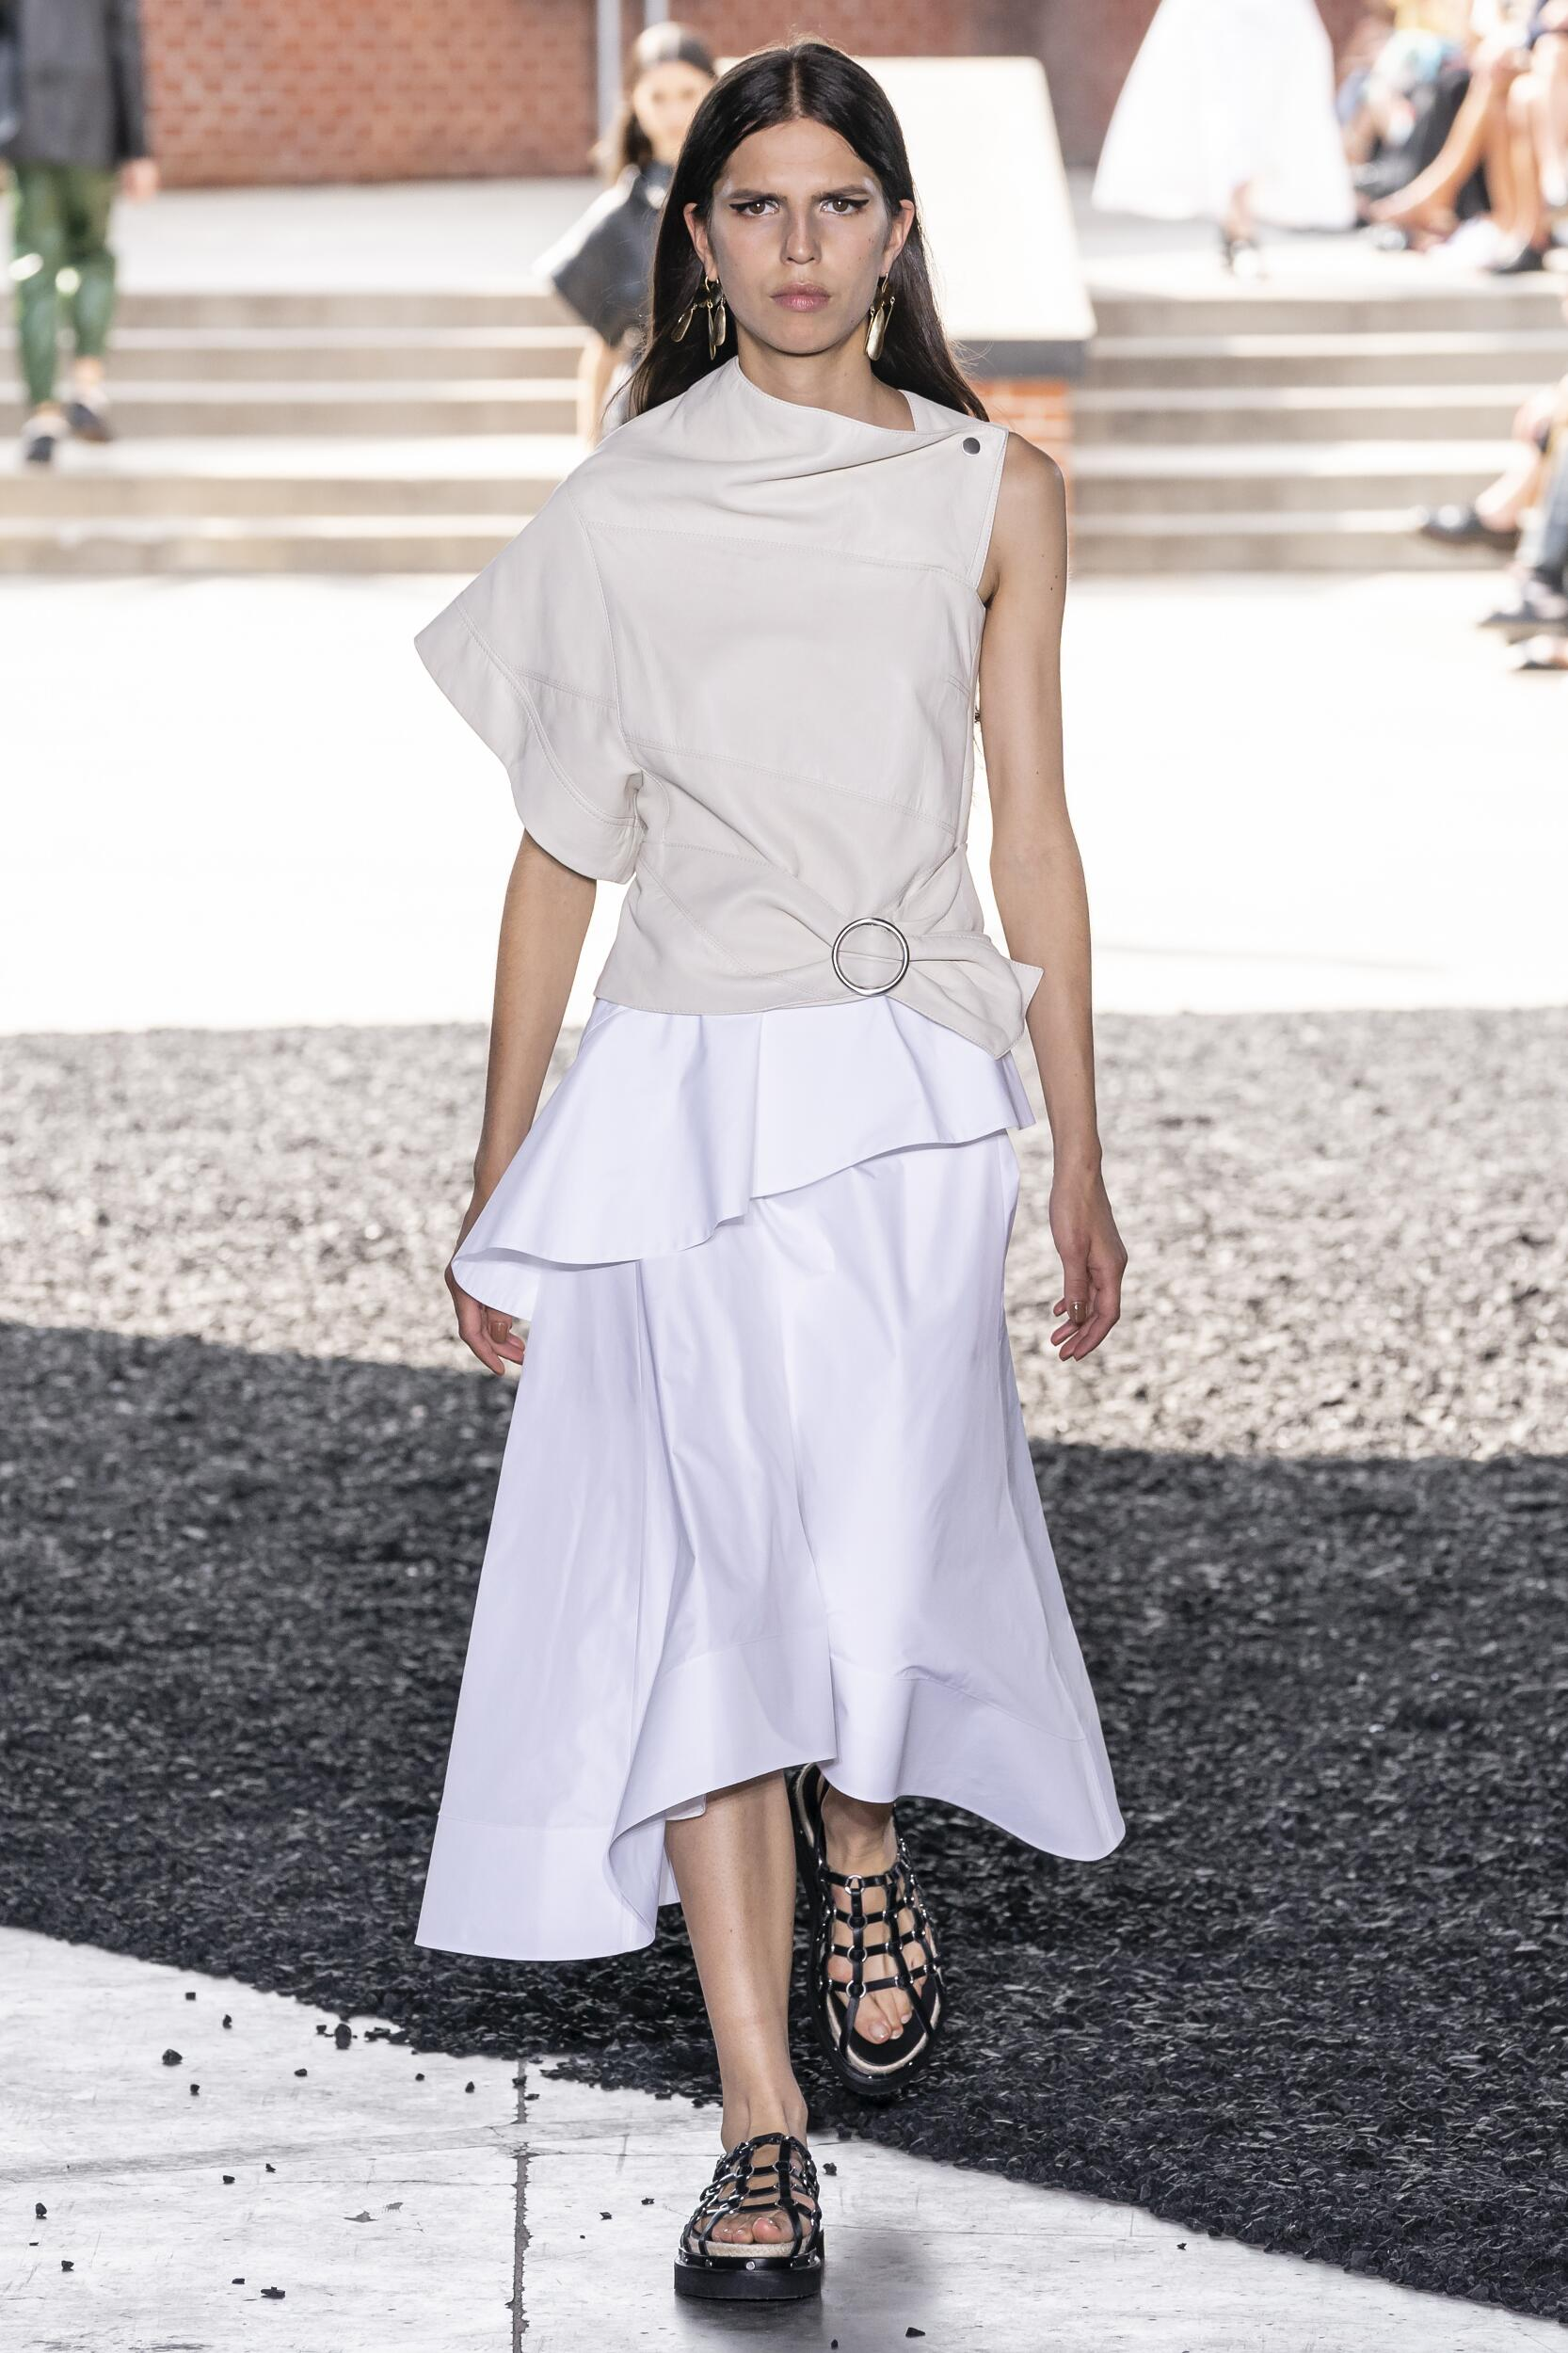 Womenswear Spring Summer 3.1 Phillip Lim 2020 Trends